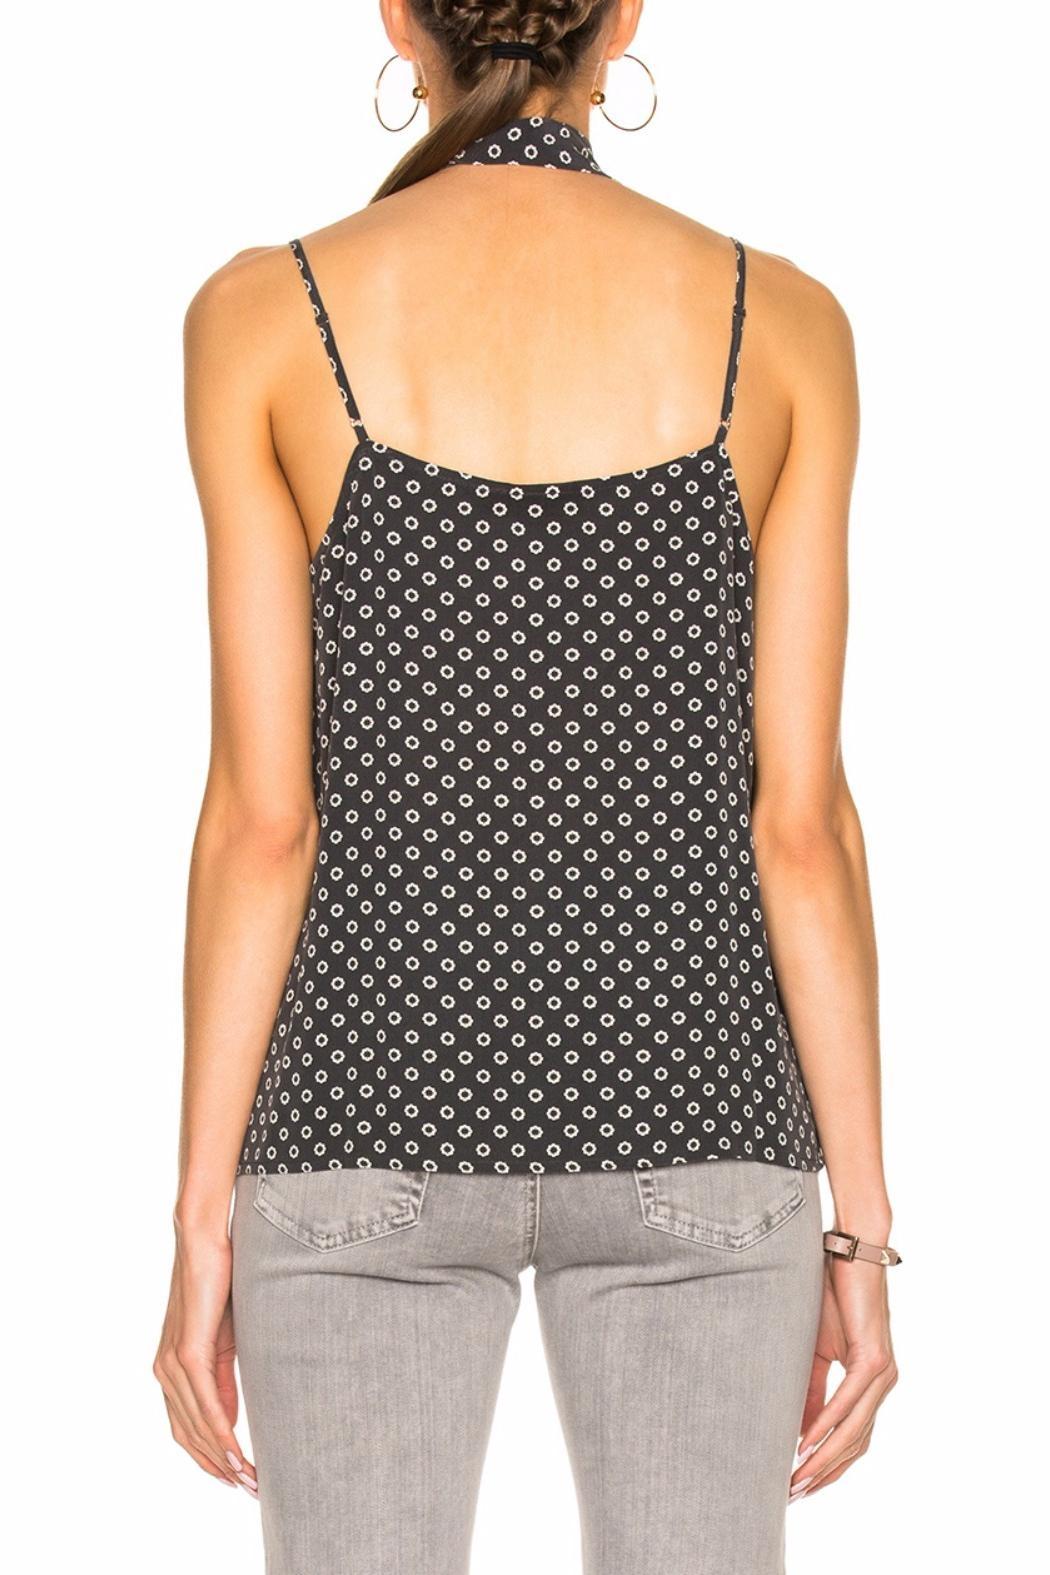 Adriano Goldschmied Lisette Tank Top - Front Full Image